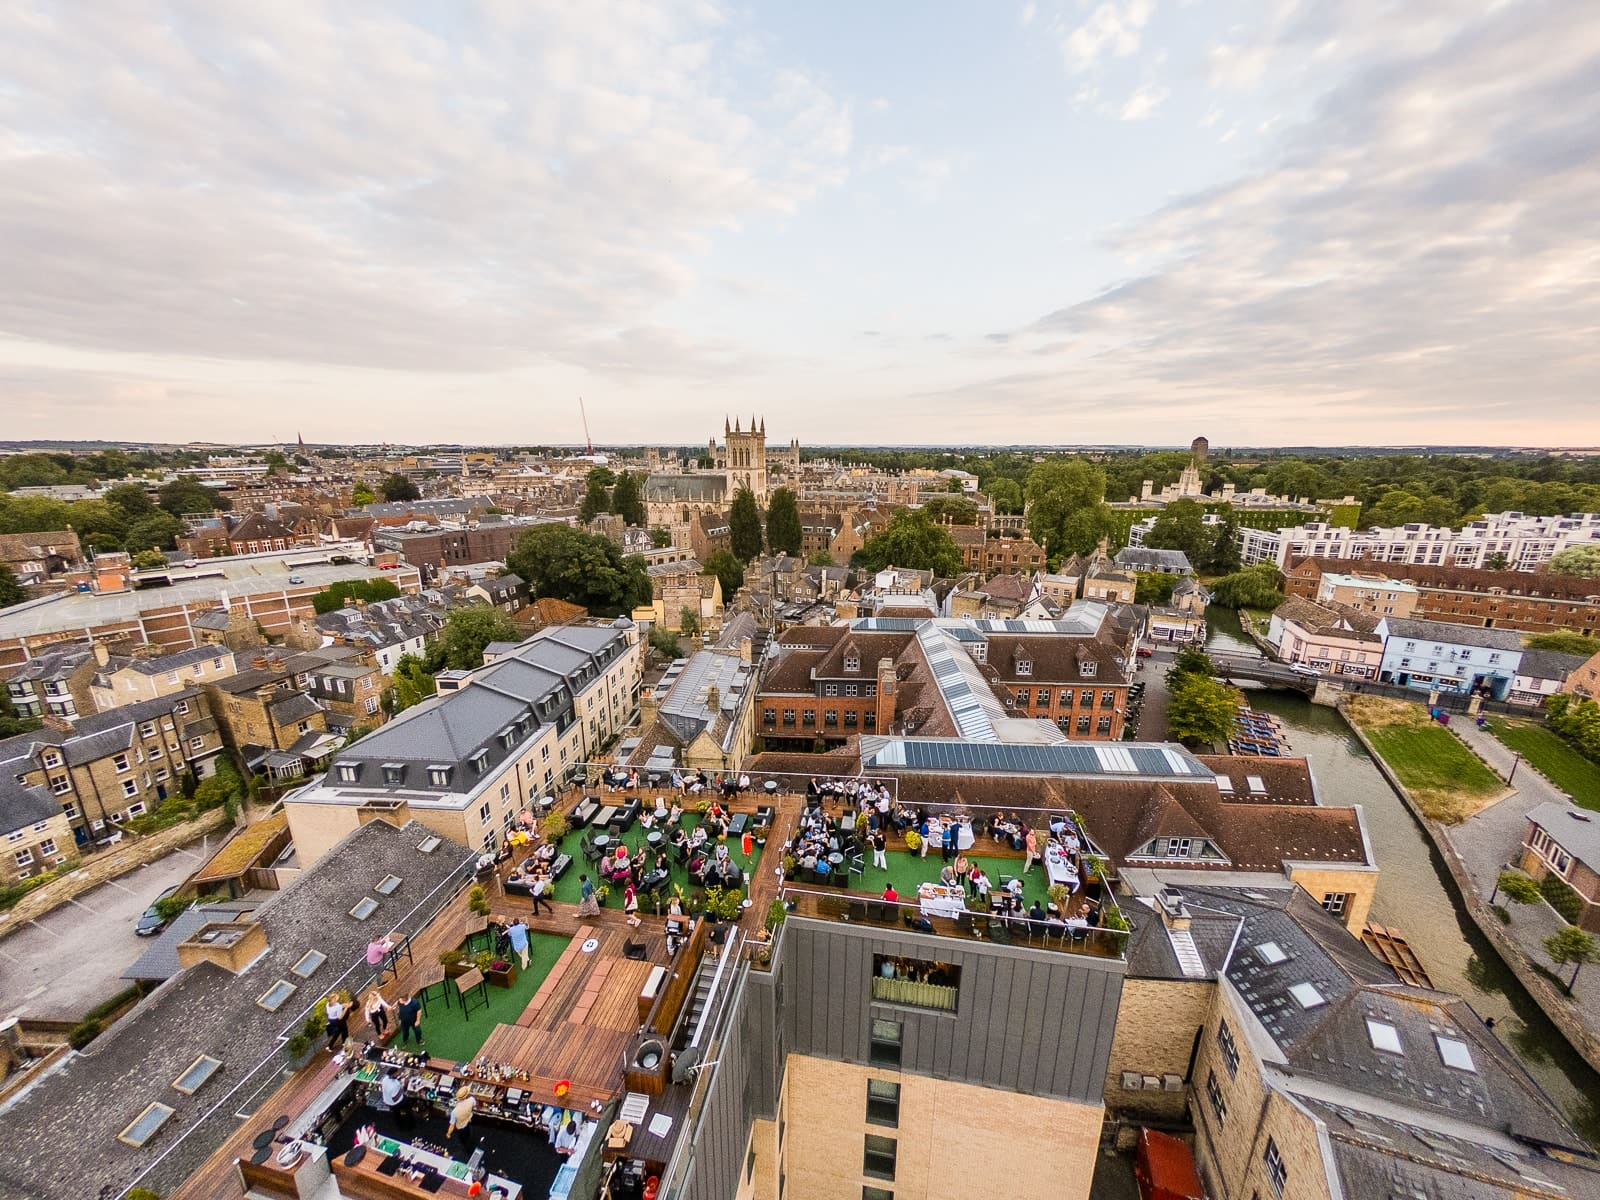 The Rooftop bar in Cambridge